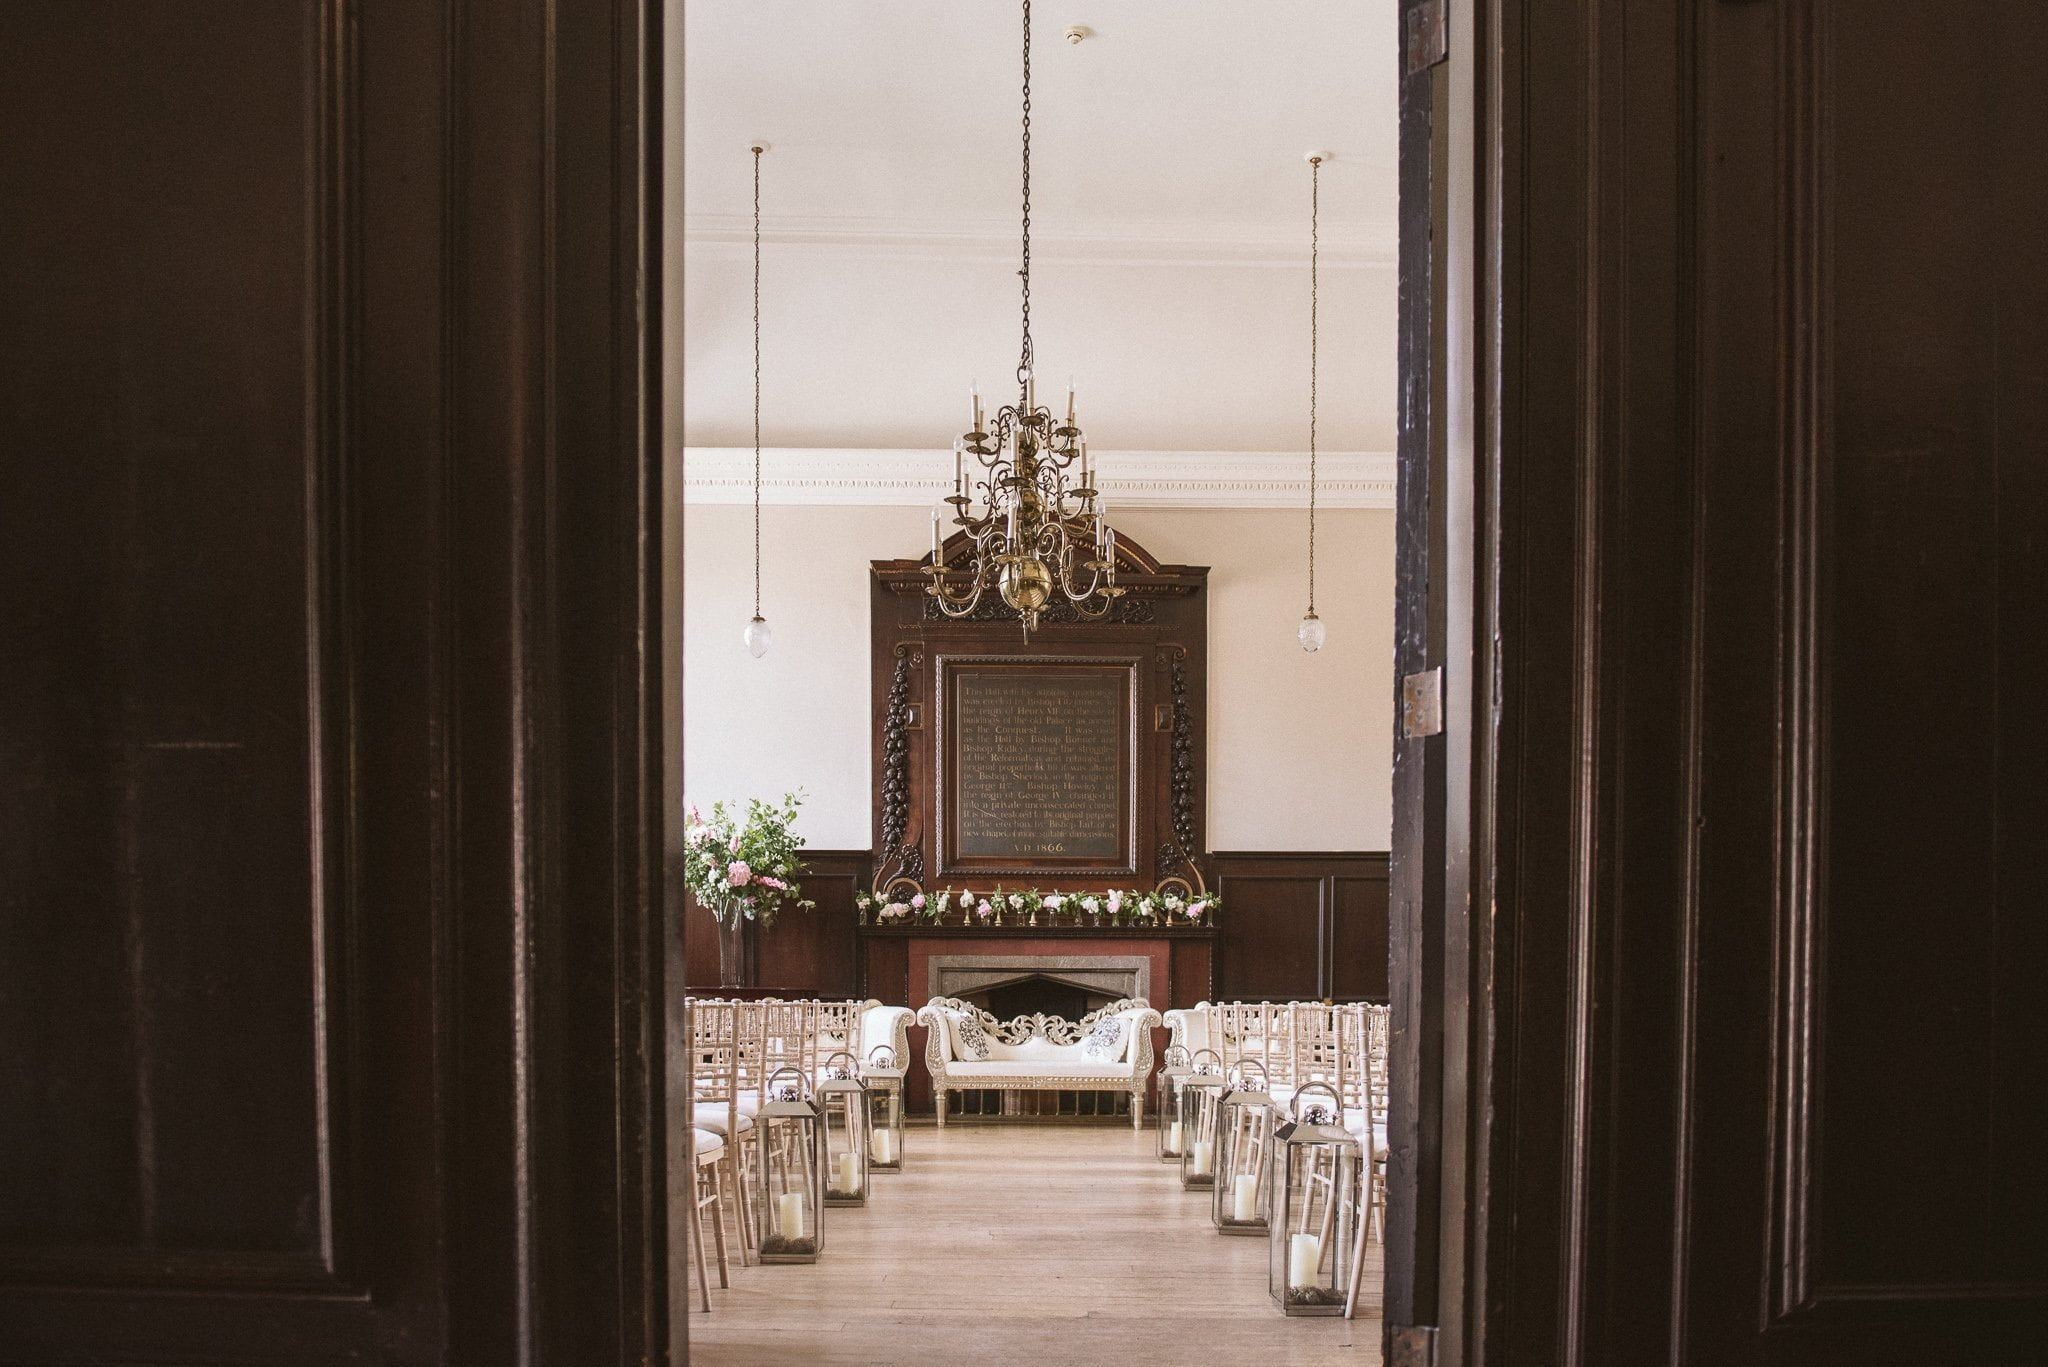 A view through the doors of the ceremony location at Fulham Palace, before the guests arrive